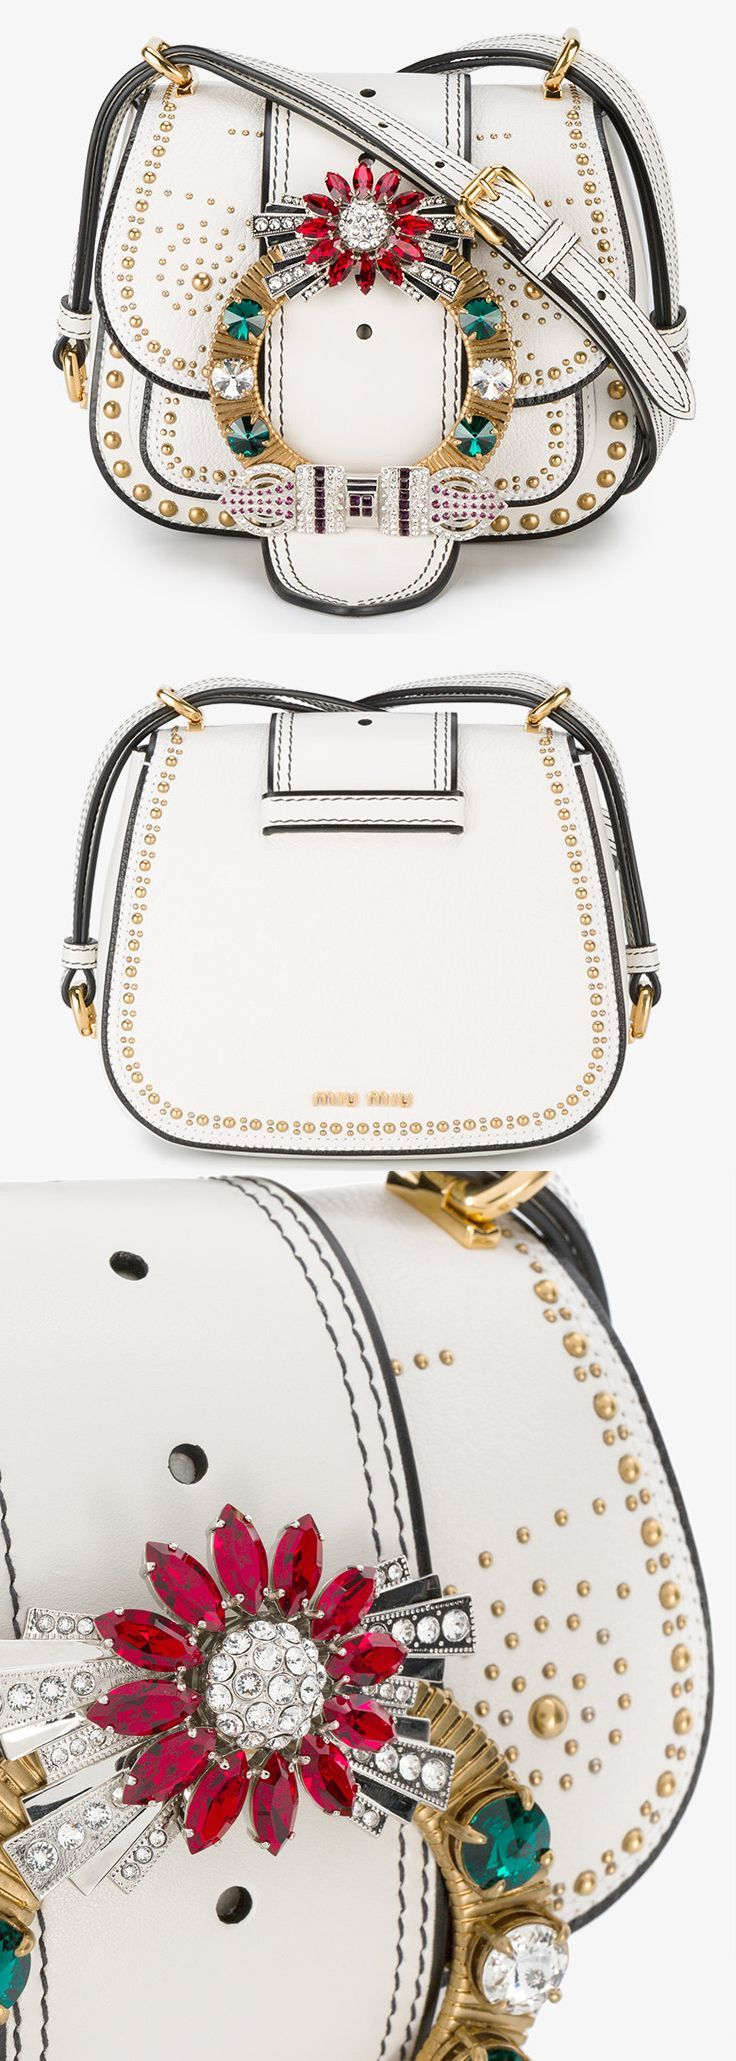 Miu Miu small Dalia stud embellished bag. This white and multi-coloured Miu Miu small Dalia leather stud embellished bag exists because everything looks better when covered in dazzling crystals. This bag is white leather with front flap with adjustable multi-coloured crystal embellished buckle strap. Shoulder Bag. Bling Handbag. Leather Bag. #bags ##bling #crystals #shopping #fashion #fashionista #bagaddict #miumiu #winter #wedding #motherofthebride #affiliatelink #blogger